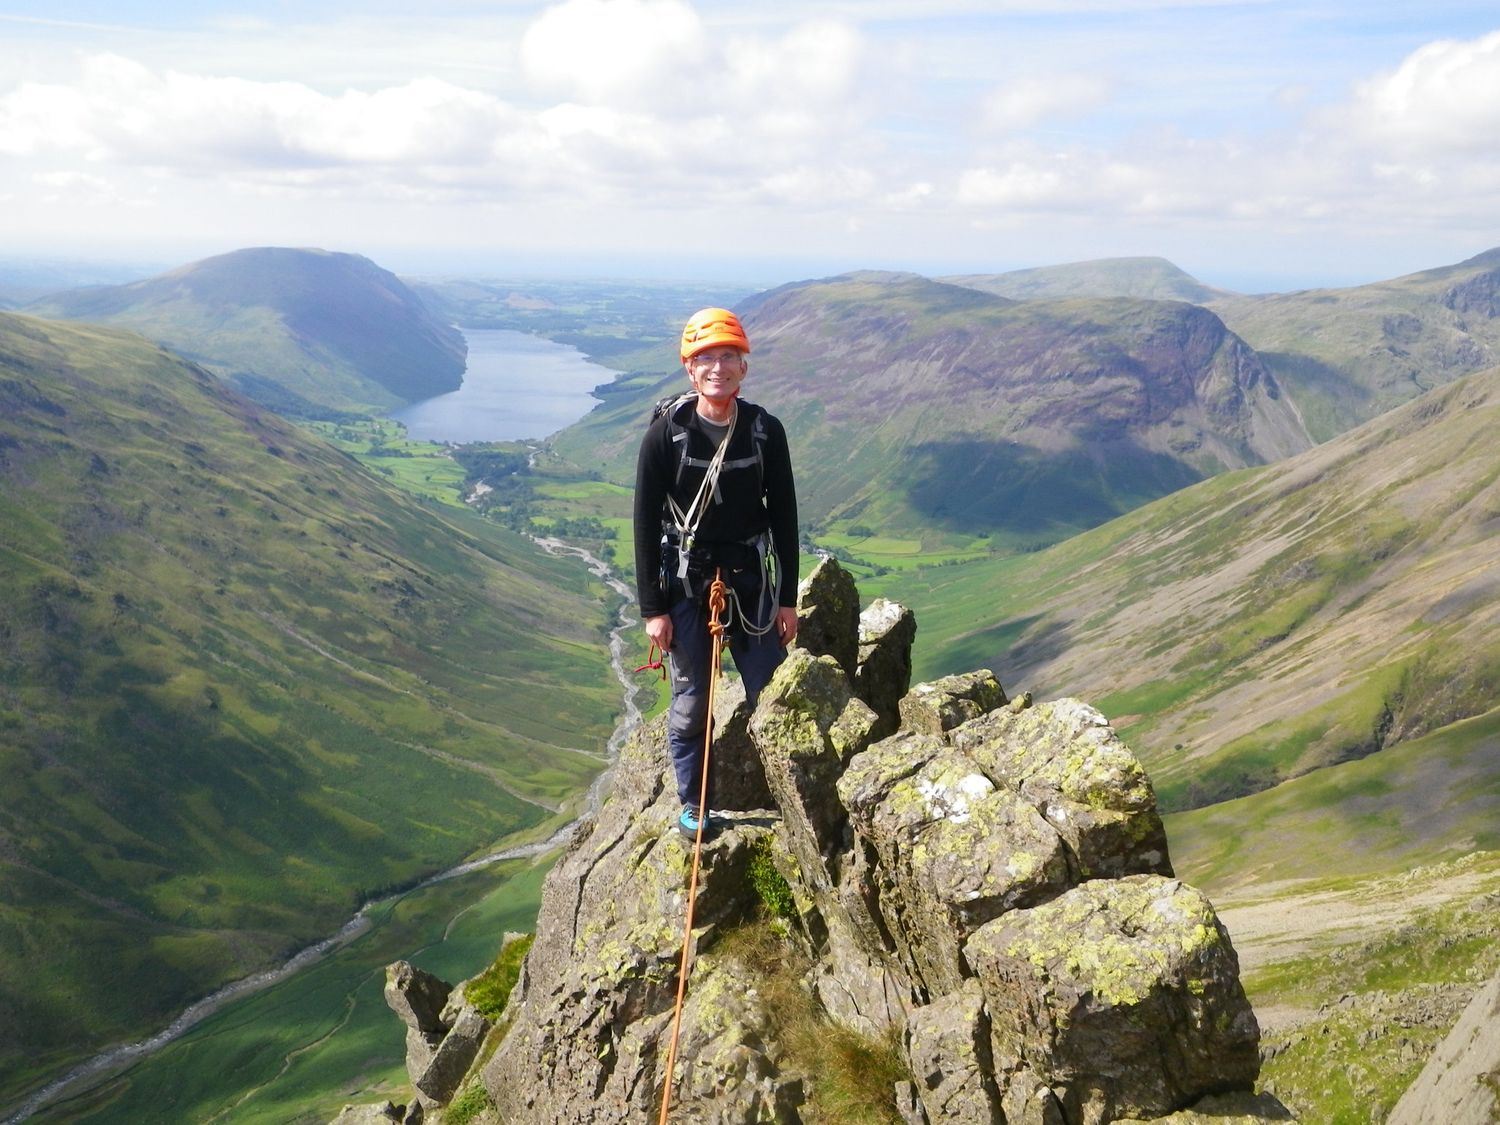 Guided rock climbing on Napes needle - Chris Ensoll Mountain Guide